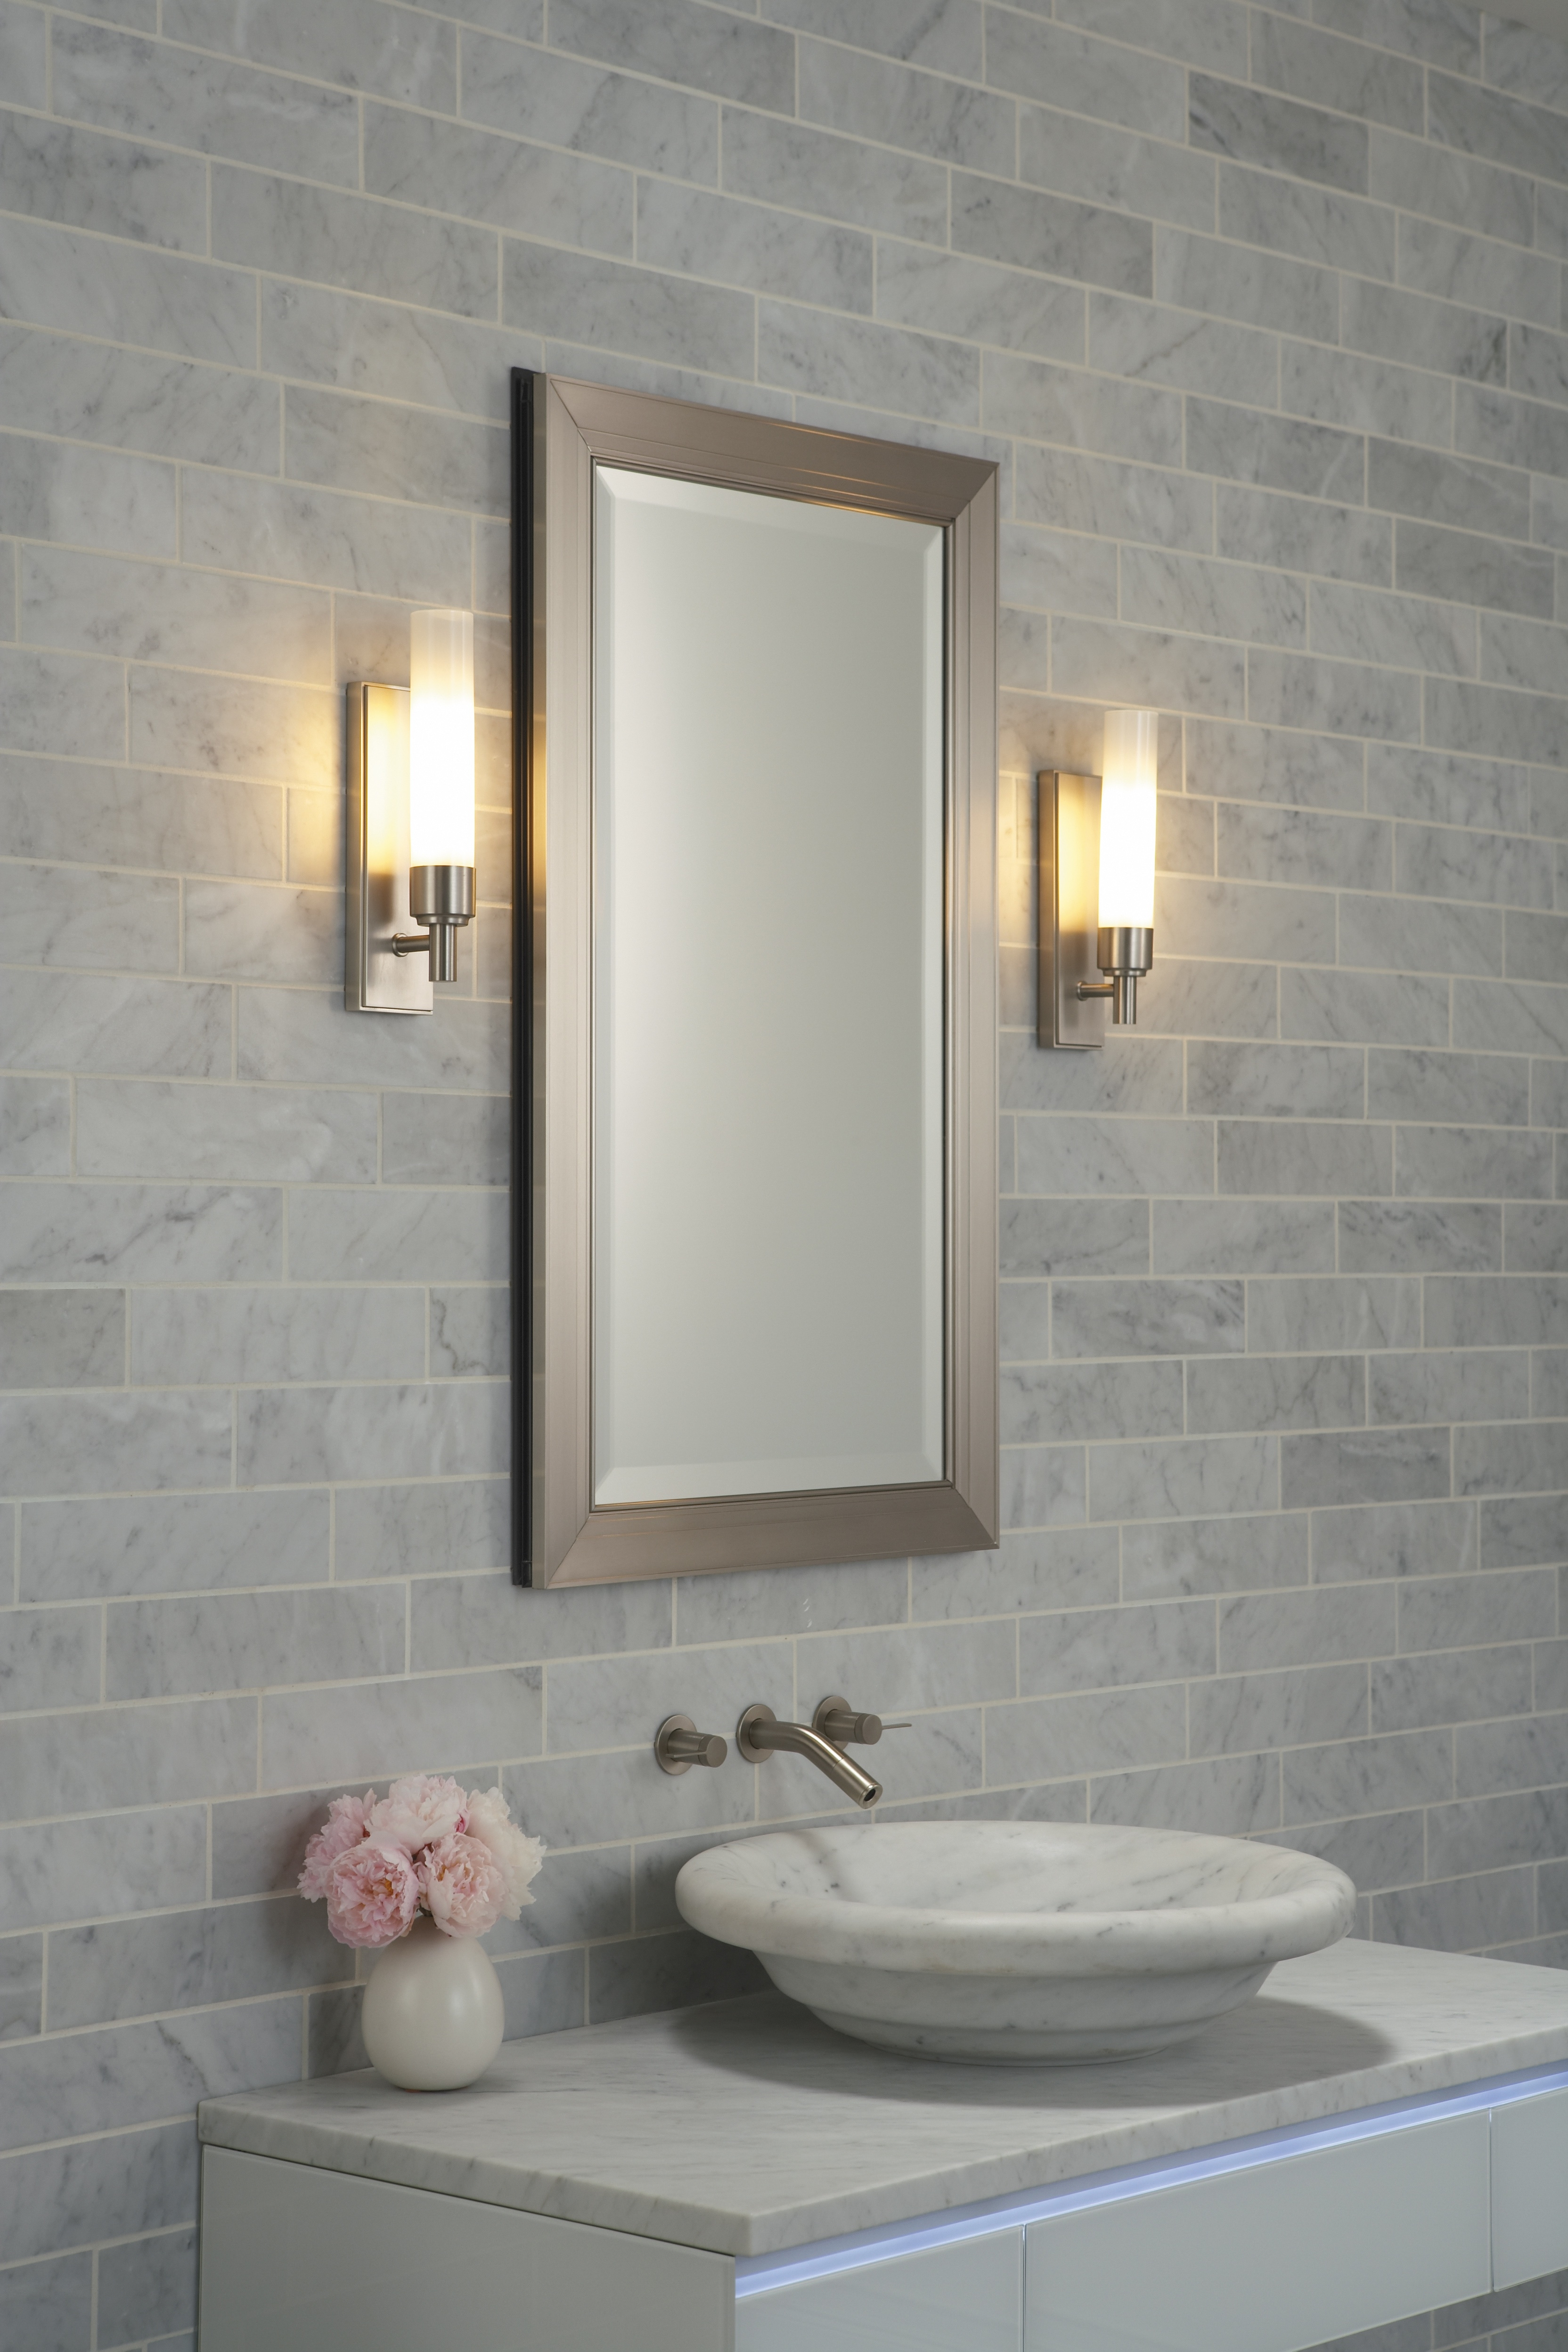 Hanging Mirror On Tile Wall